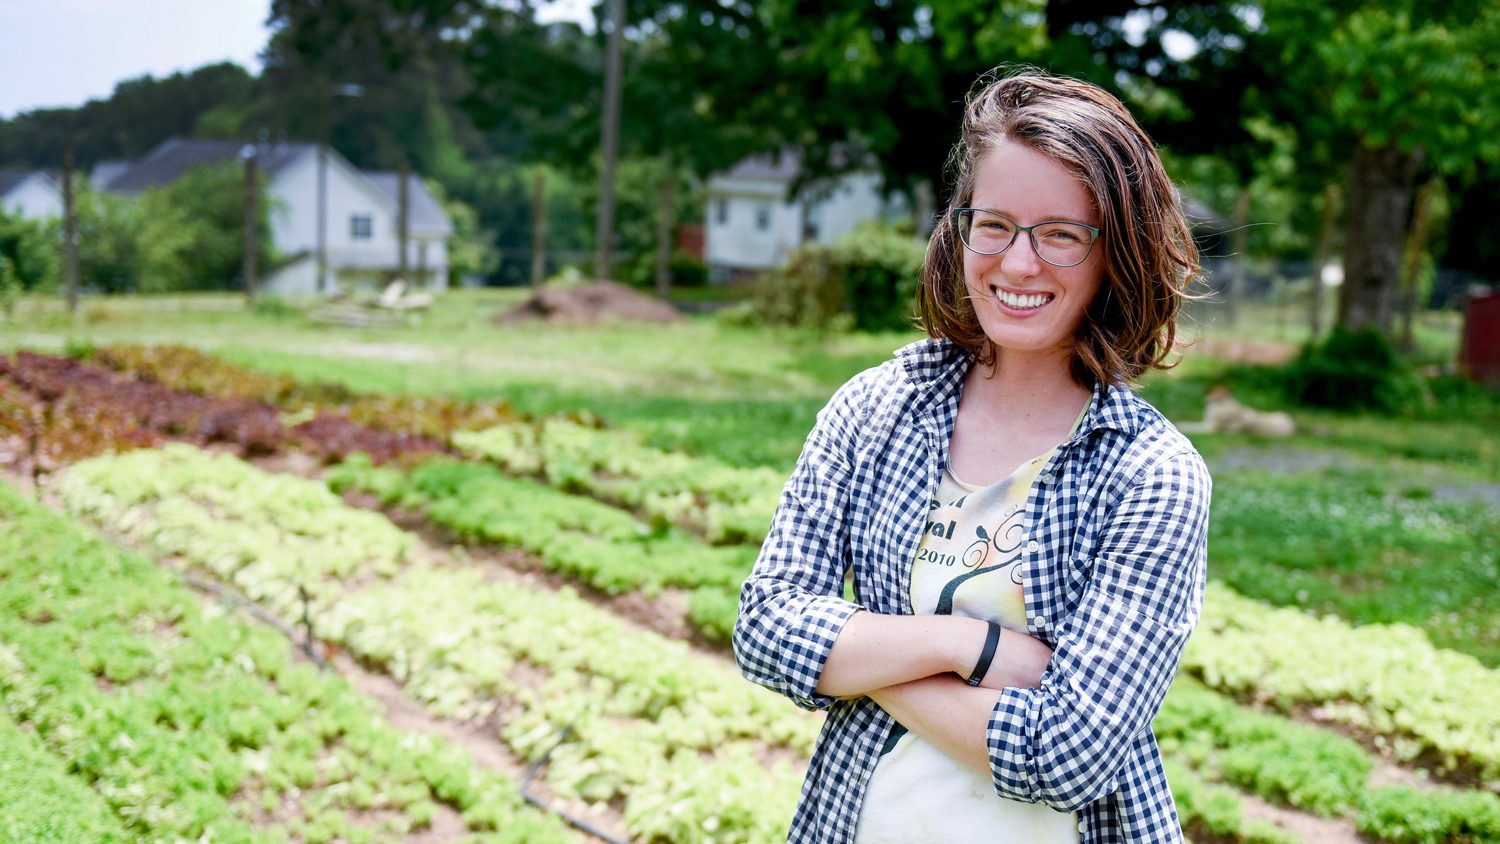 Student Morgan Malone on a farm.